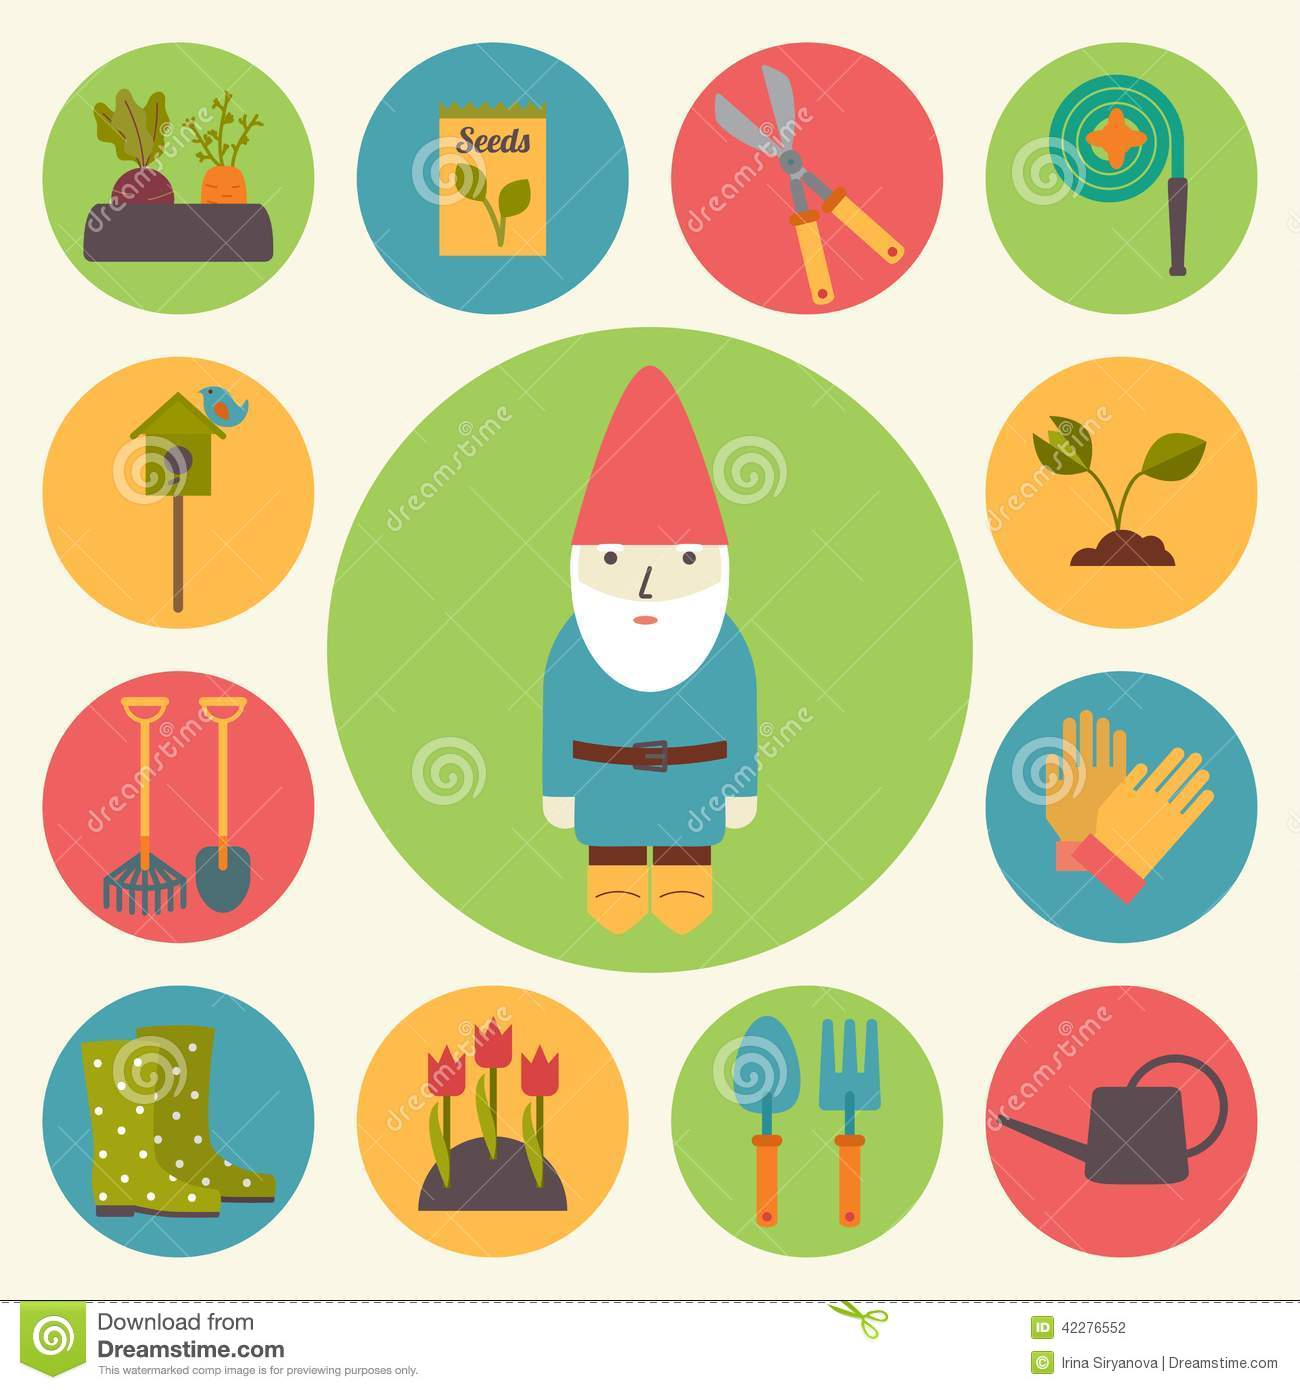 Flat design rubber hose vector illustration for Landscape design icons